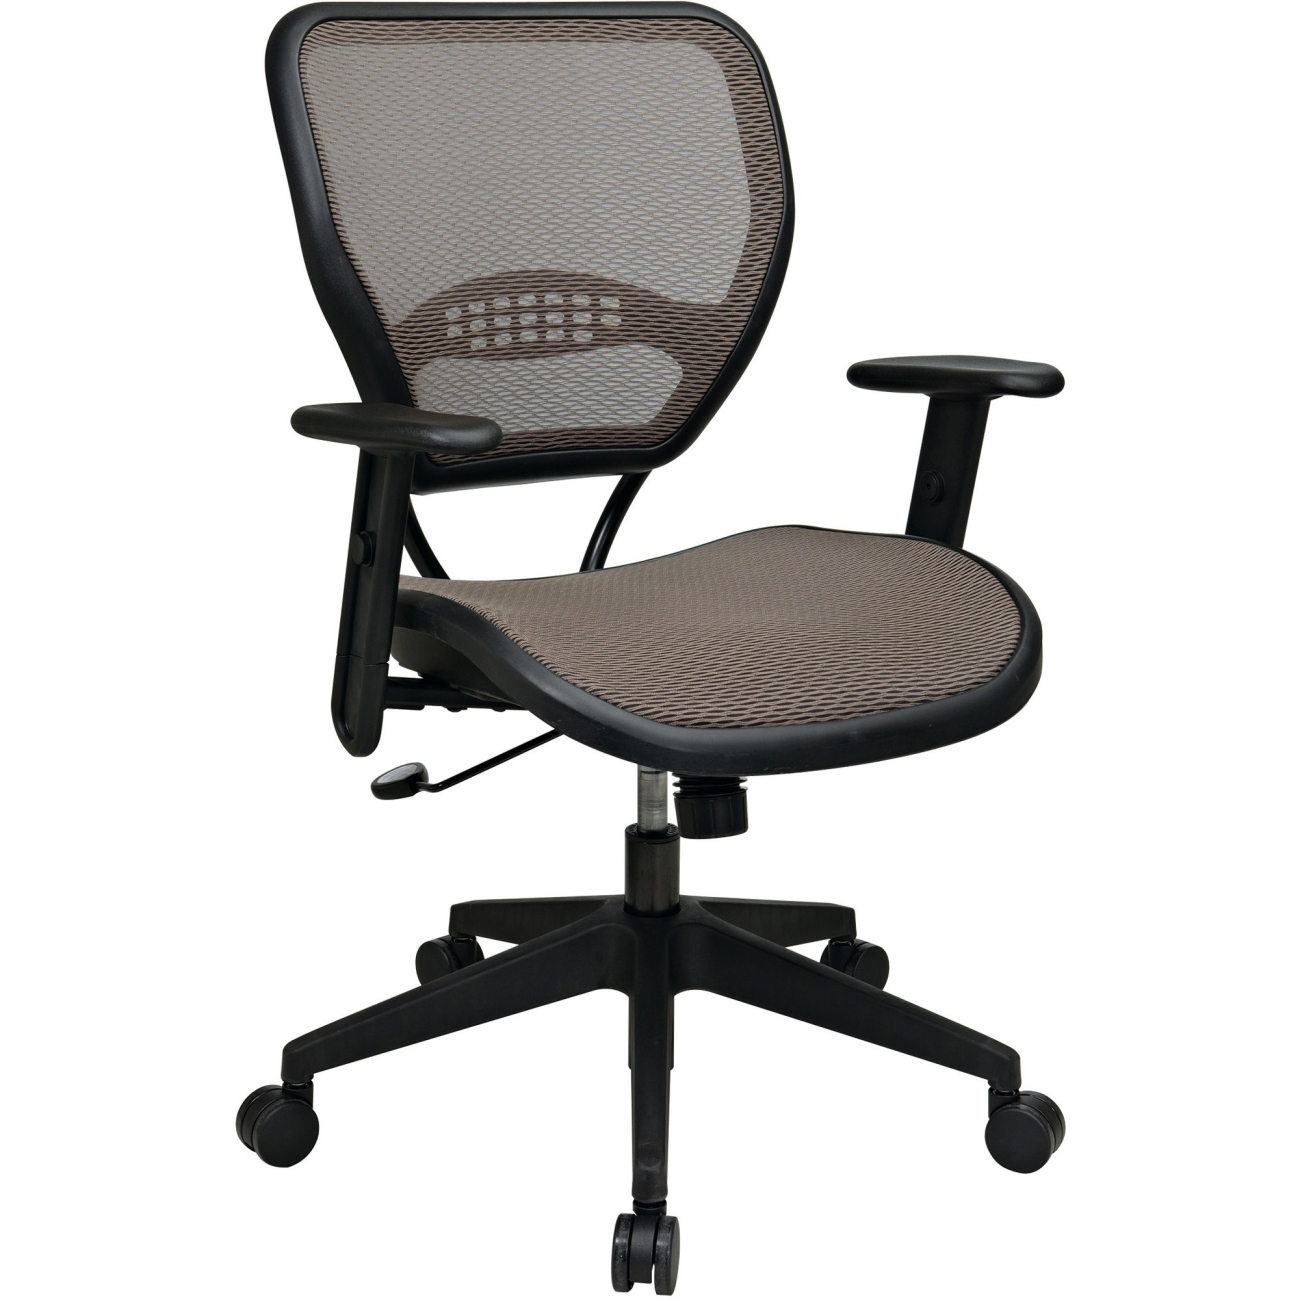 Office Star Professional Air Grid Deluxe Task Chair office star space seating deluxe airgrid task chair, latte